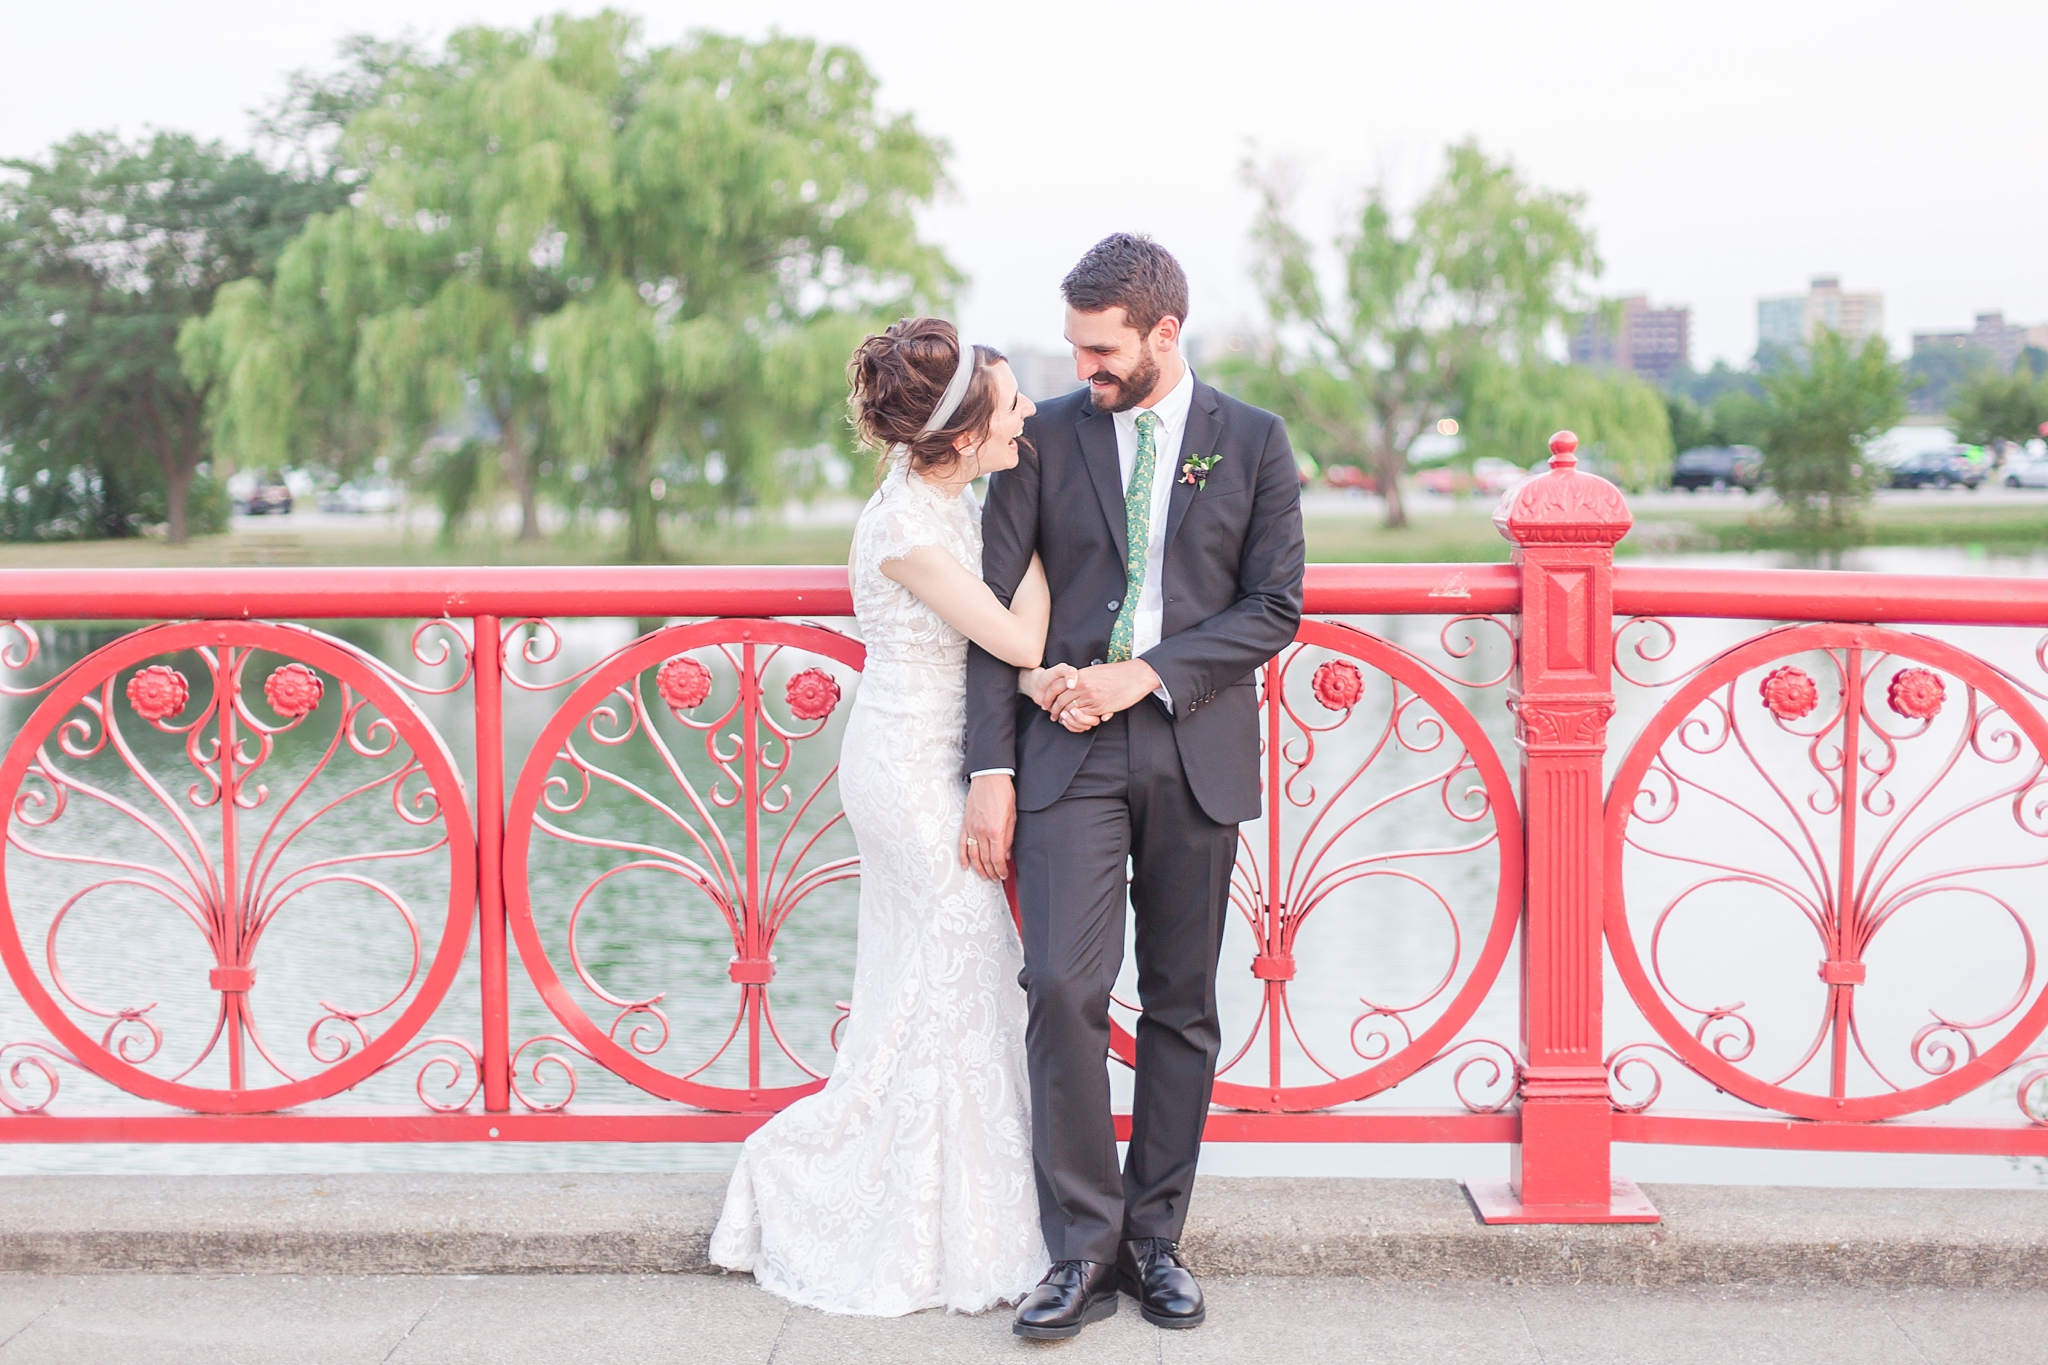 alternative-joyful-wedding-photos-at-the-belle-isle-casino-in-detroit-michigan-by-courtney-carolyn-photography_0069.jpg